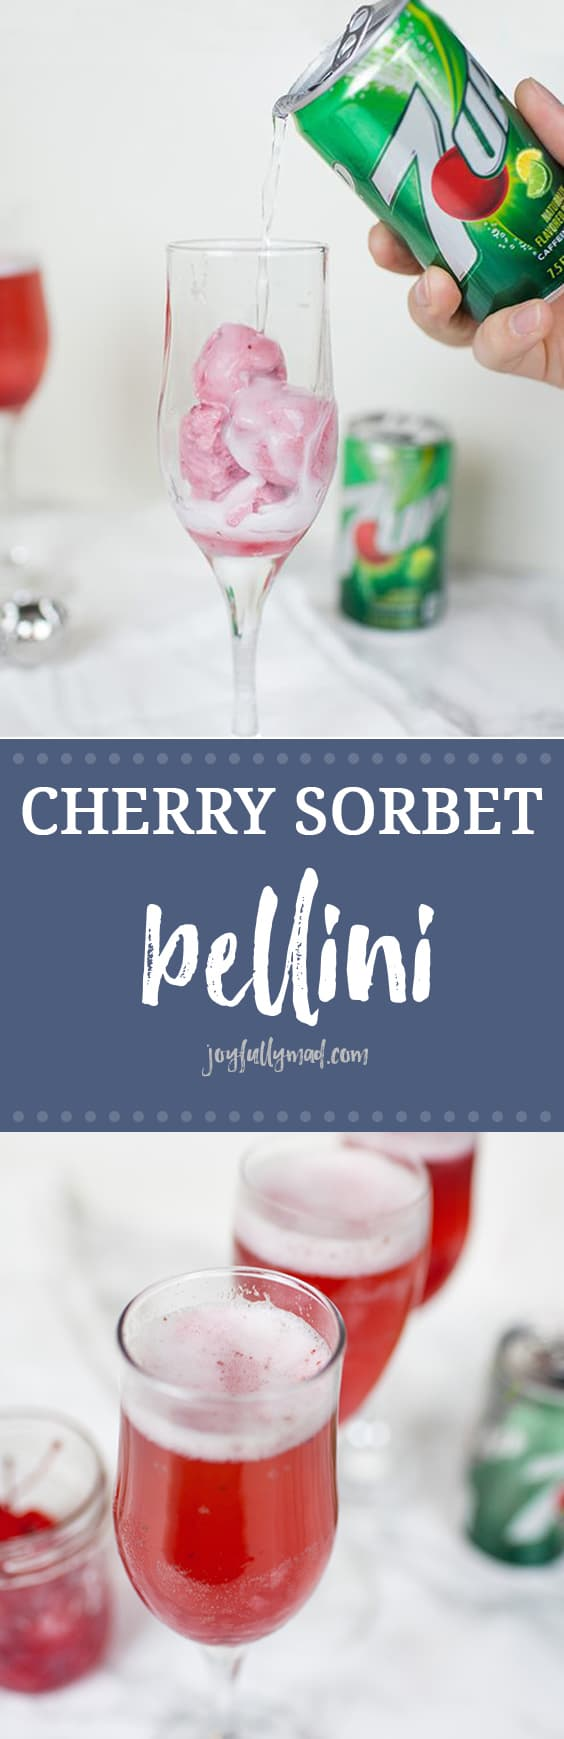 Cherry Sorbet Bellinis make the perfect easy party cocktail and punch idea for any party! Using 7UP?, champagne or prosecco, and black cherry sorbet, you can have a beautiful cocktail that?s perfect for sharing! 7up | 7up cocktail | 7up drink | party drinks | party cocktails | shower drinks | proseco cocktails | champagne cocktails | baby shower punch recipe | bridal shower punch recipe | football drink recipes | valentine's day drink recipe